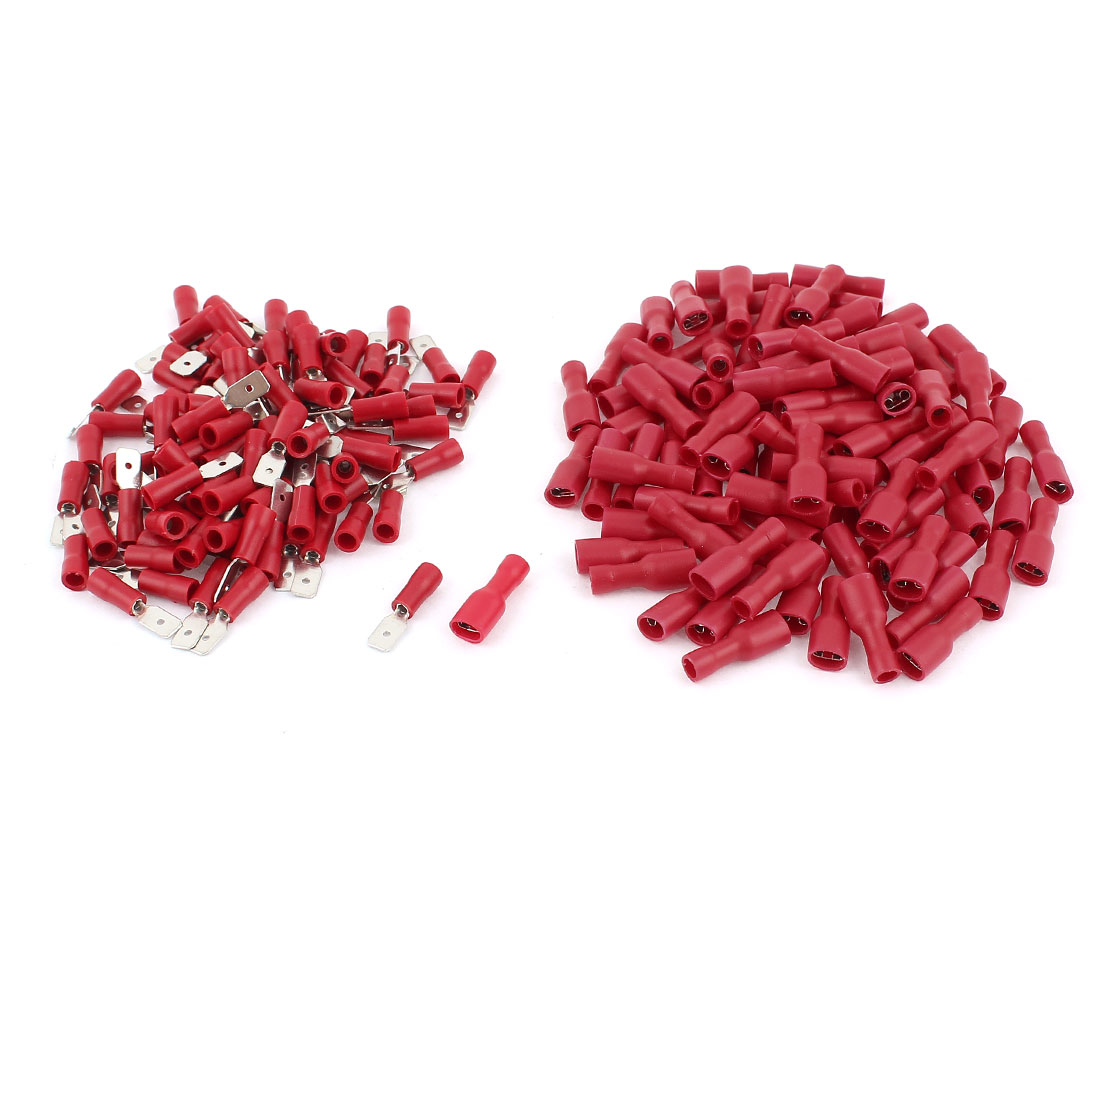 200 Pcs FDFD1-187 Female + MDD1-187 Male Wire Spade Insulated Crimp Terminals